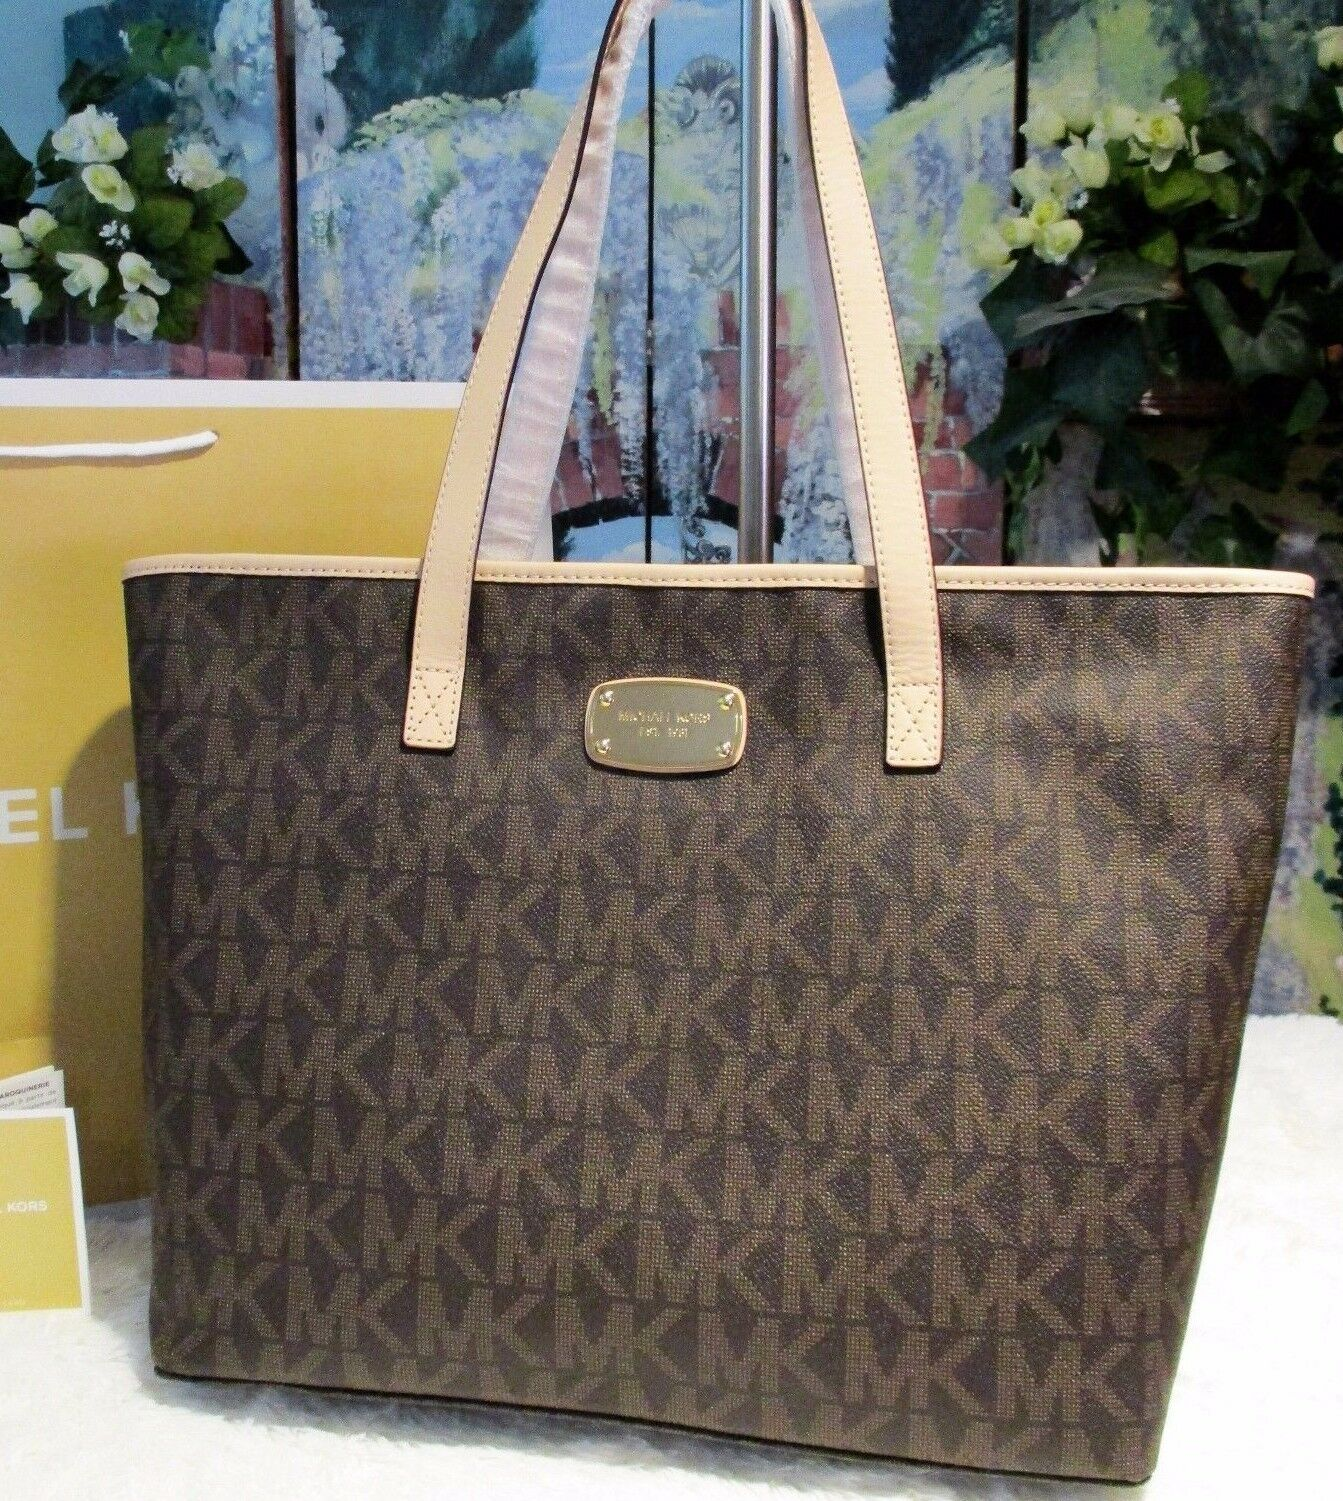 Michael kors bags ebay philippines - Picture 1 Of 12